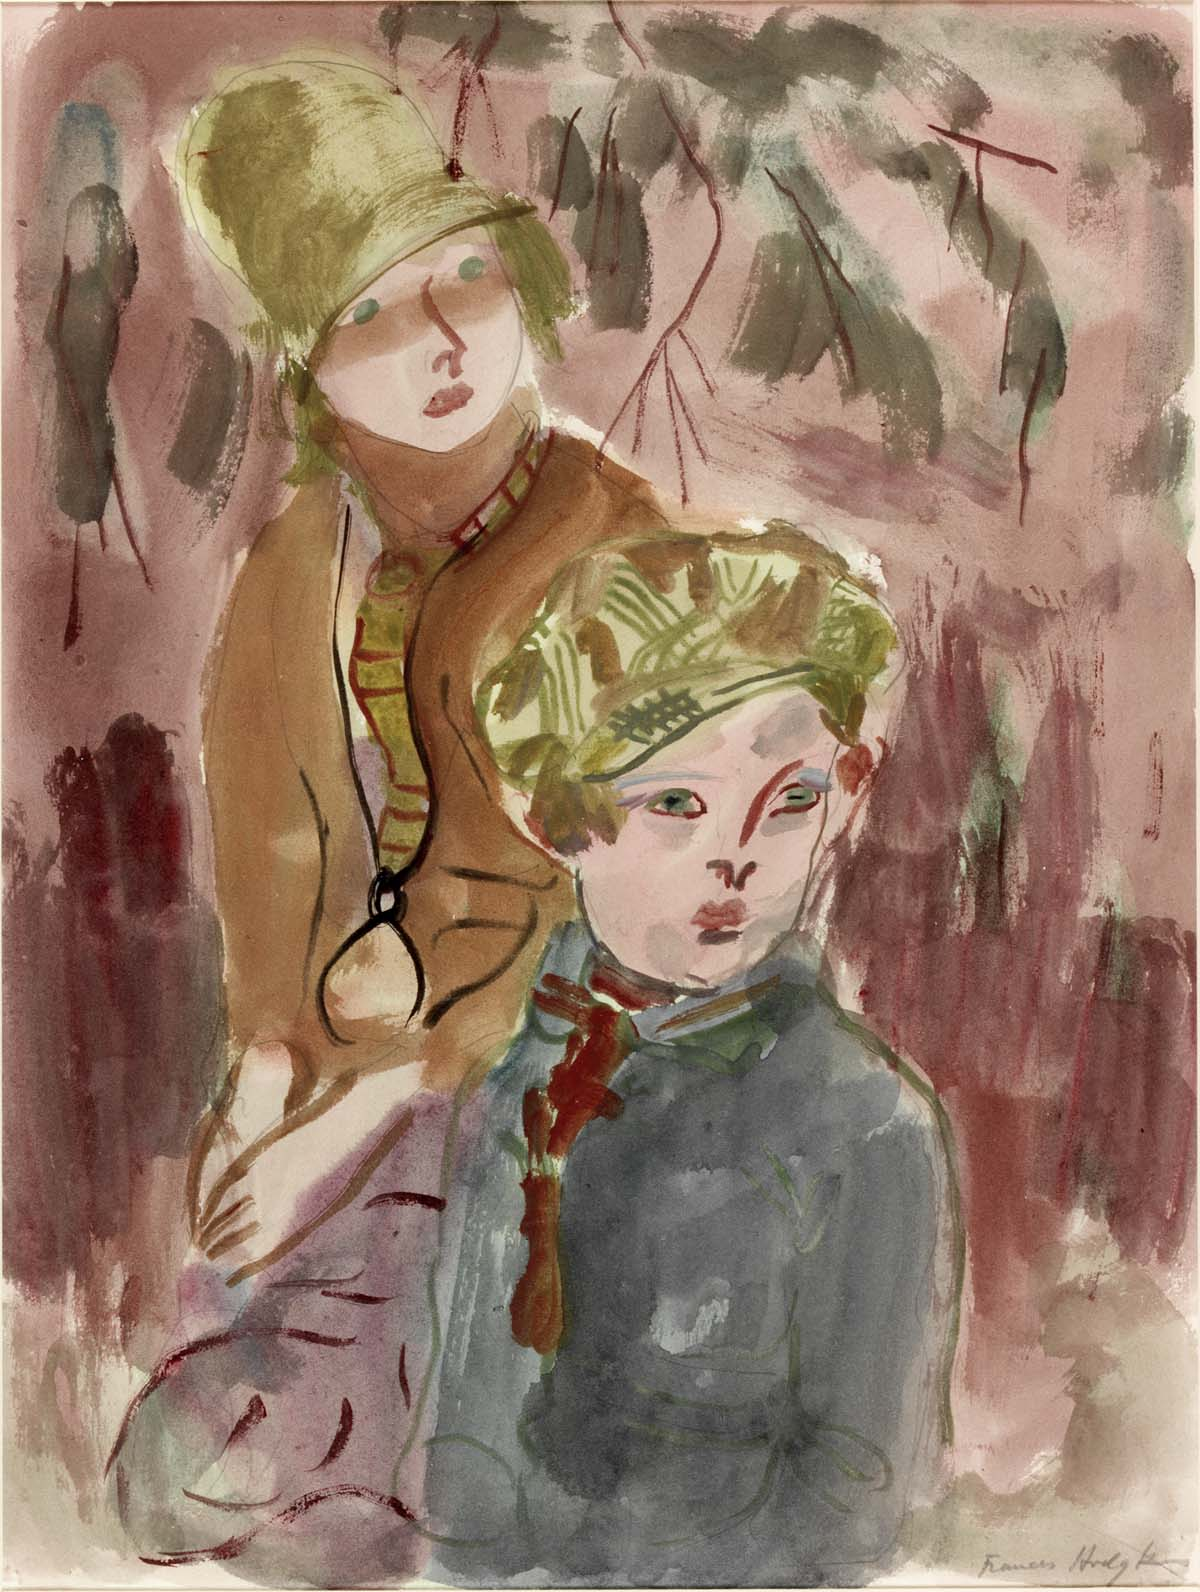 watercolour sketch of a young boy and girl in hats, scarves and winter coats